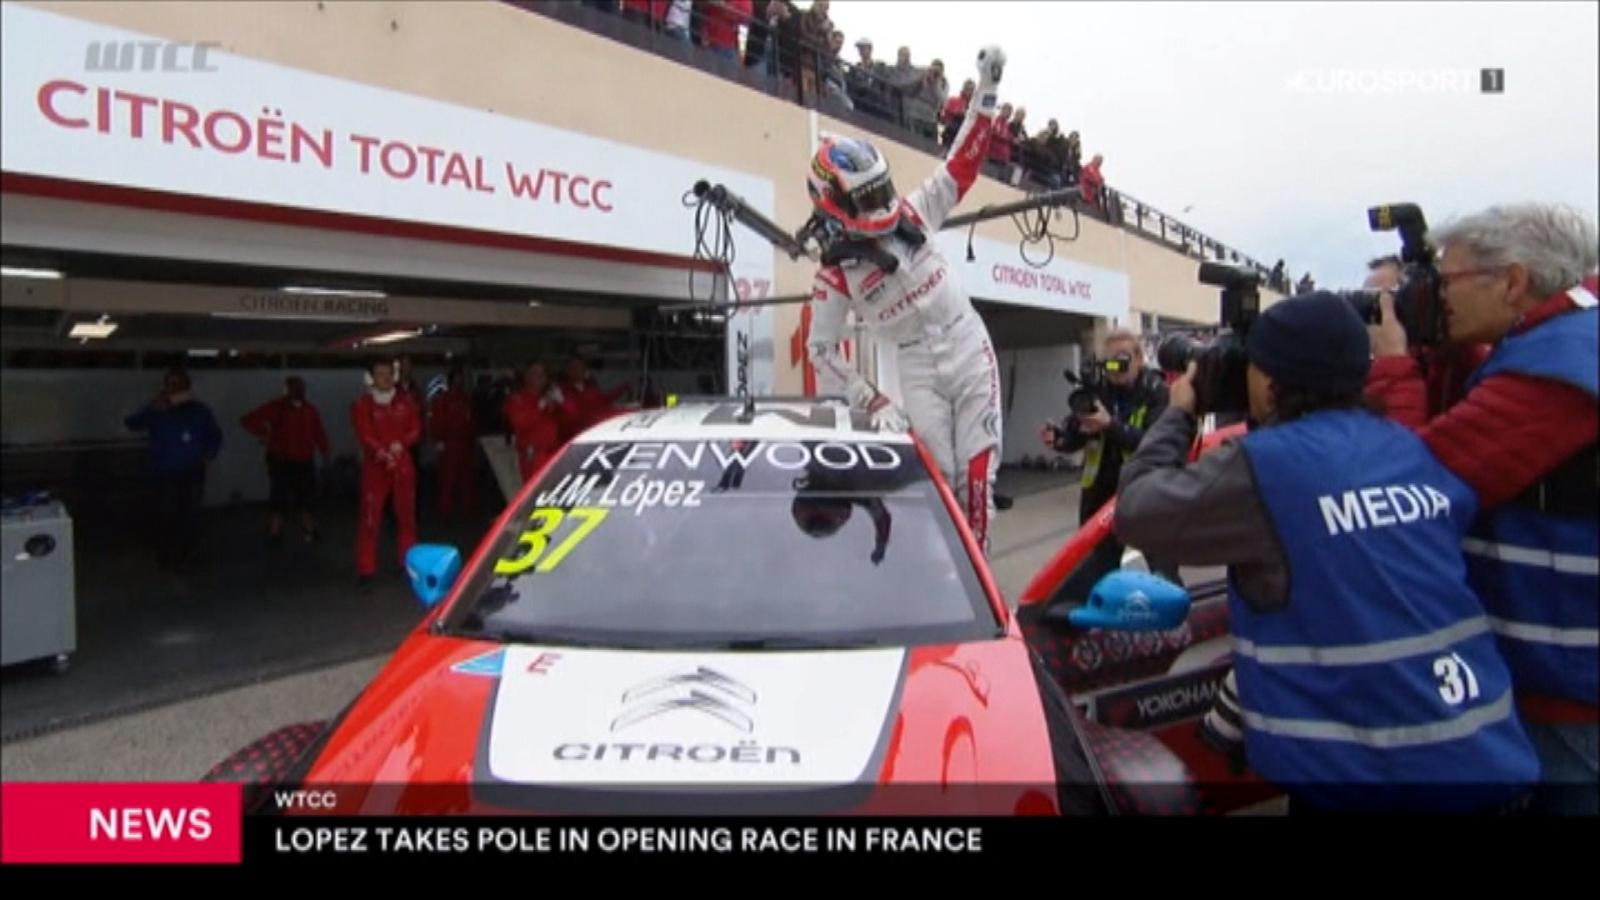 1119614fc3715 VIDEO - WTCC  Primera pole del año para  Pechito  López en Paul Ricard -  WTCC France - Video Eurosport Espana